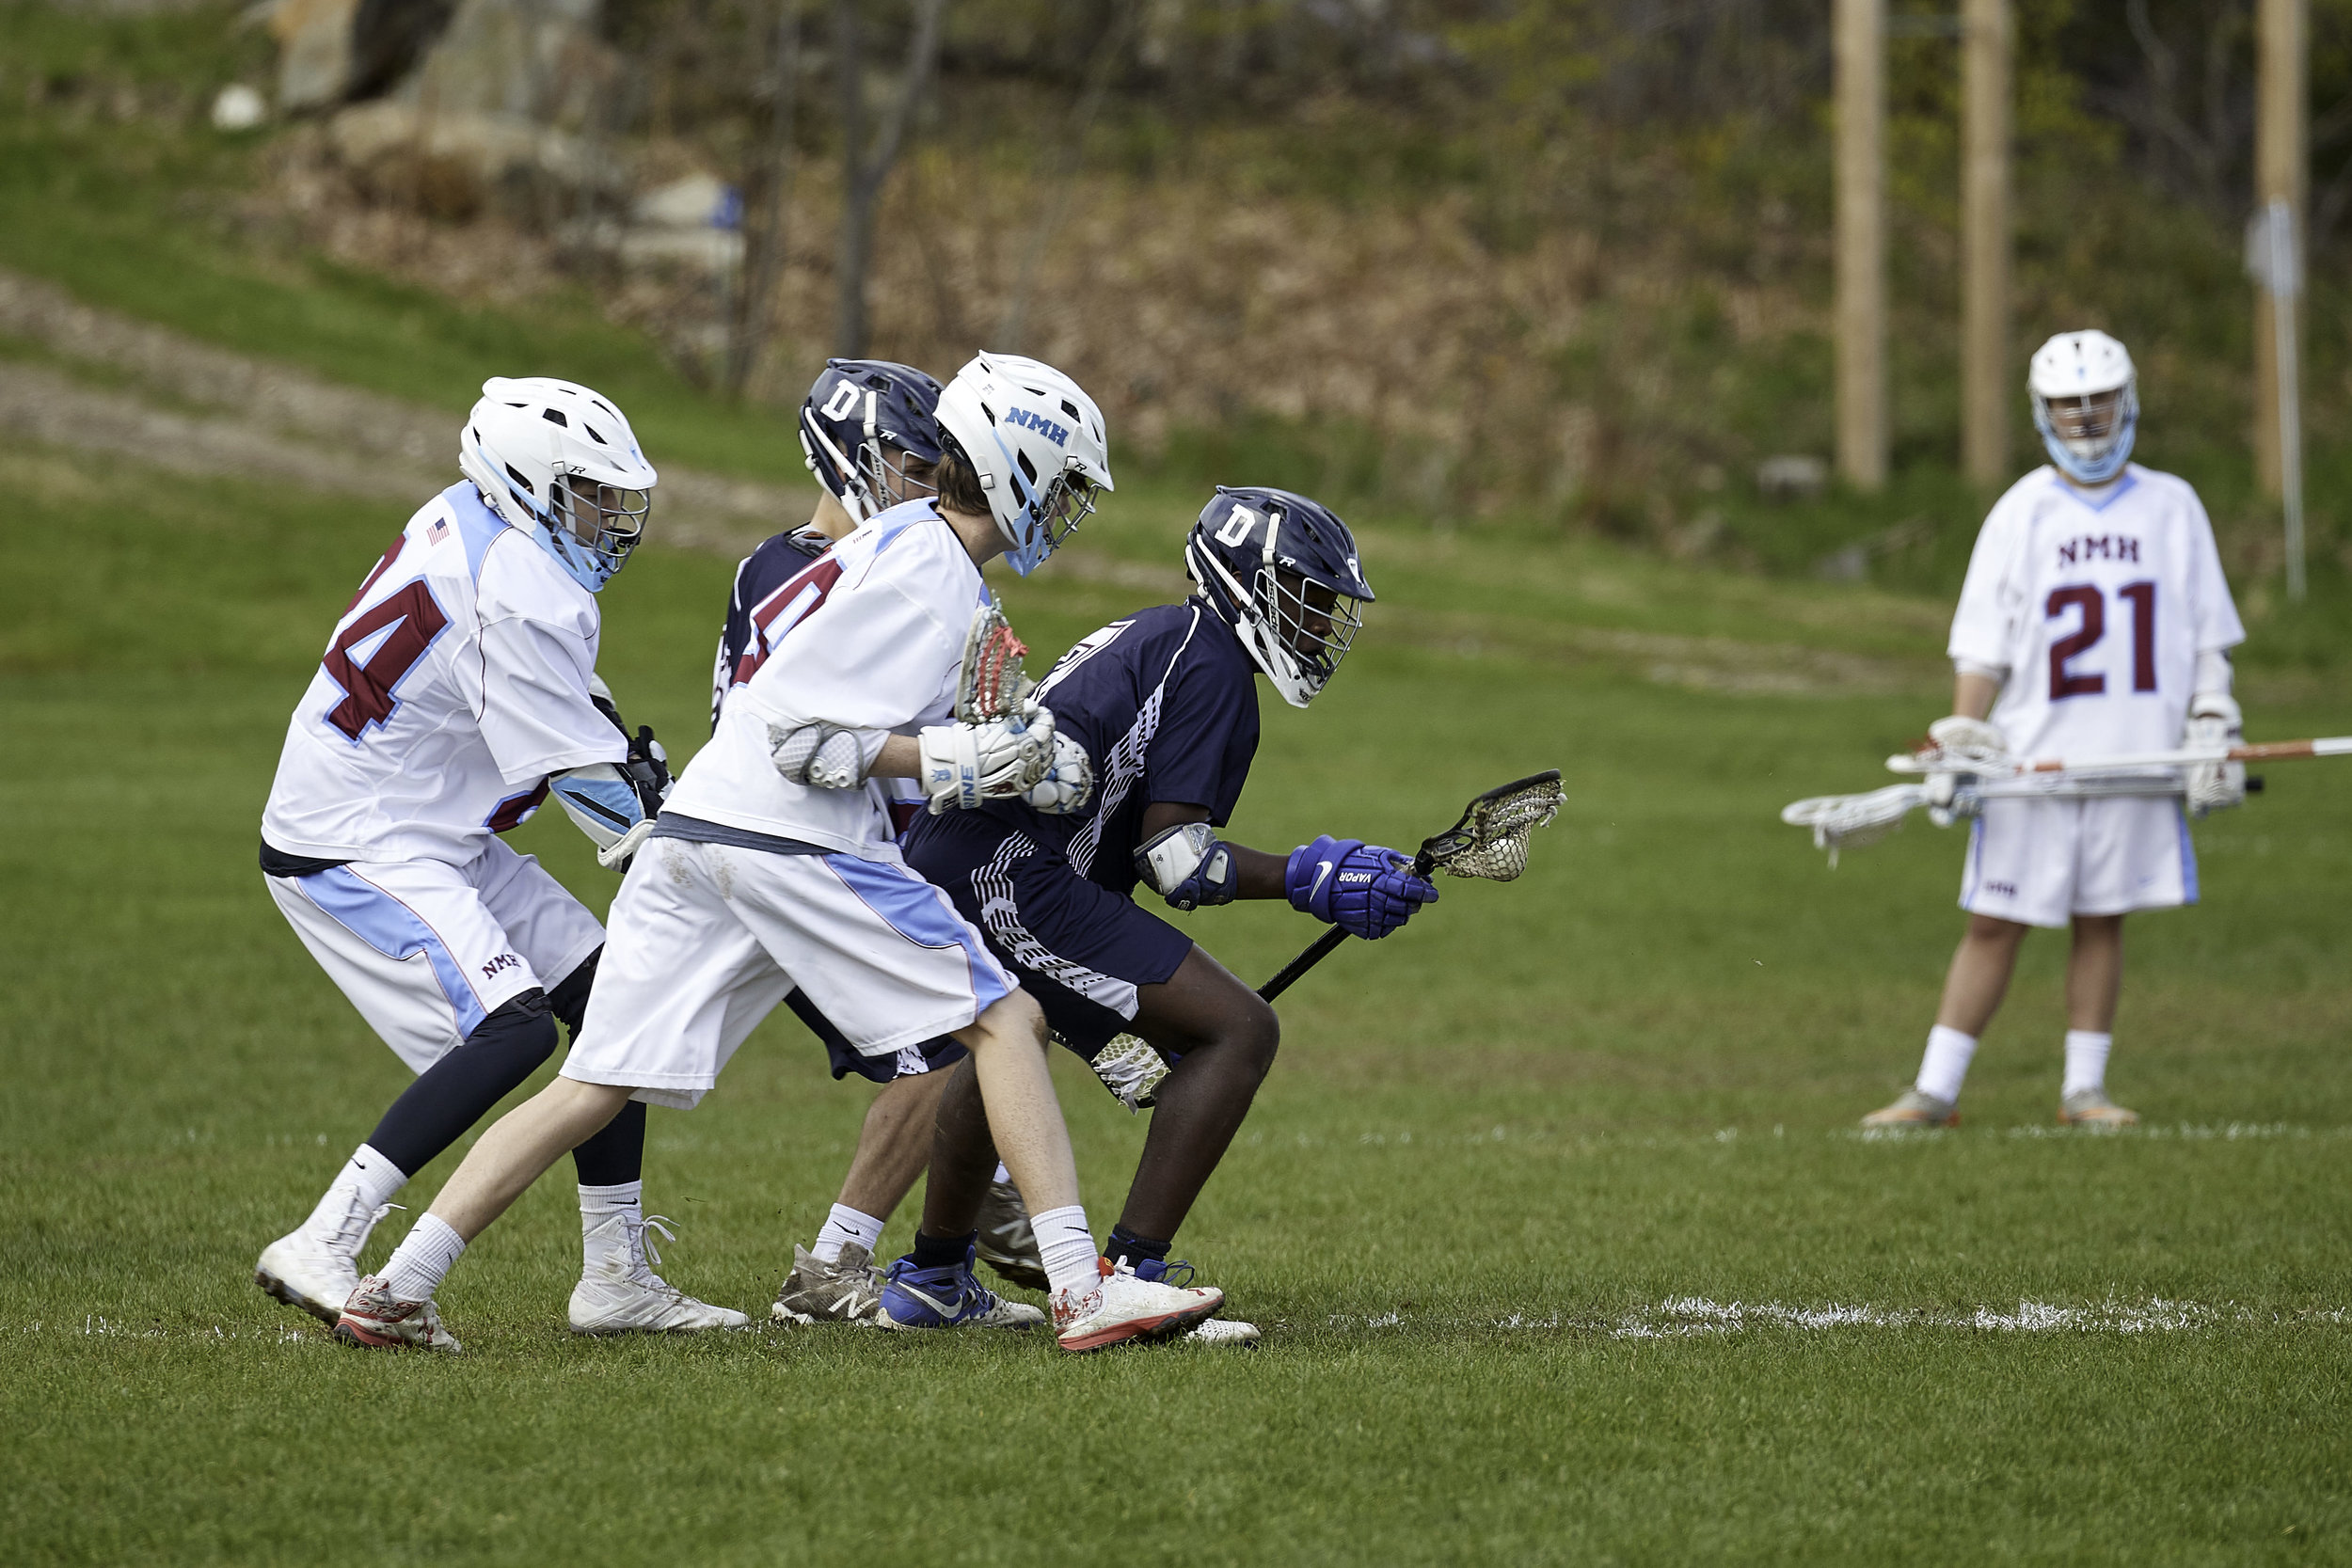 Boys Lax vs Northfield Mount Hermon JV - May 15 2019 - 0030.jpg